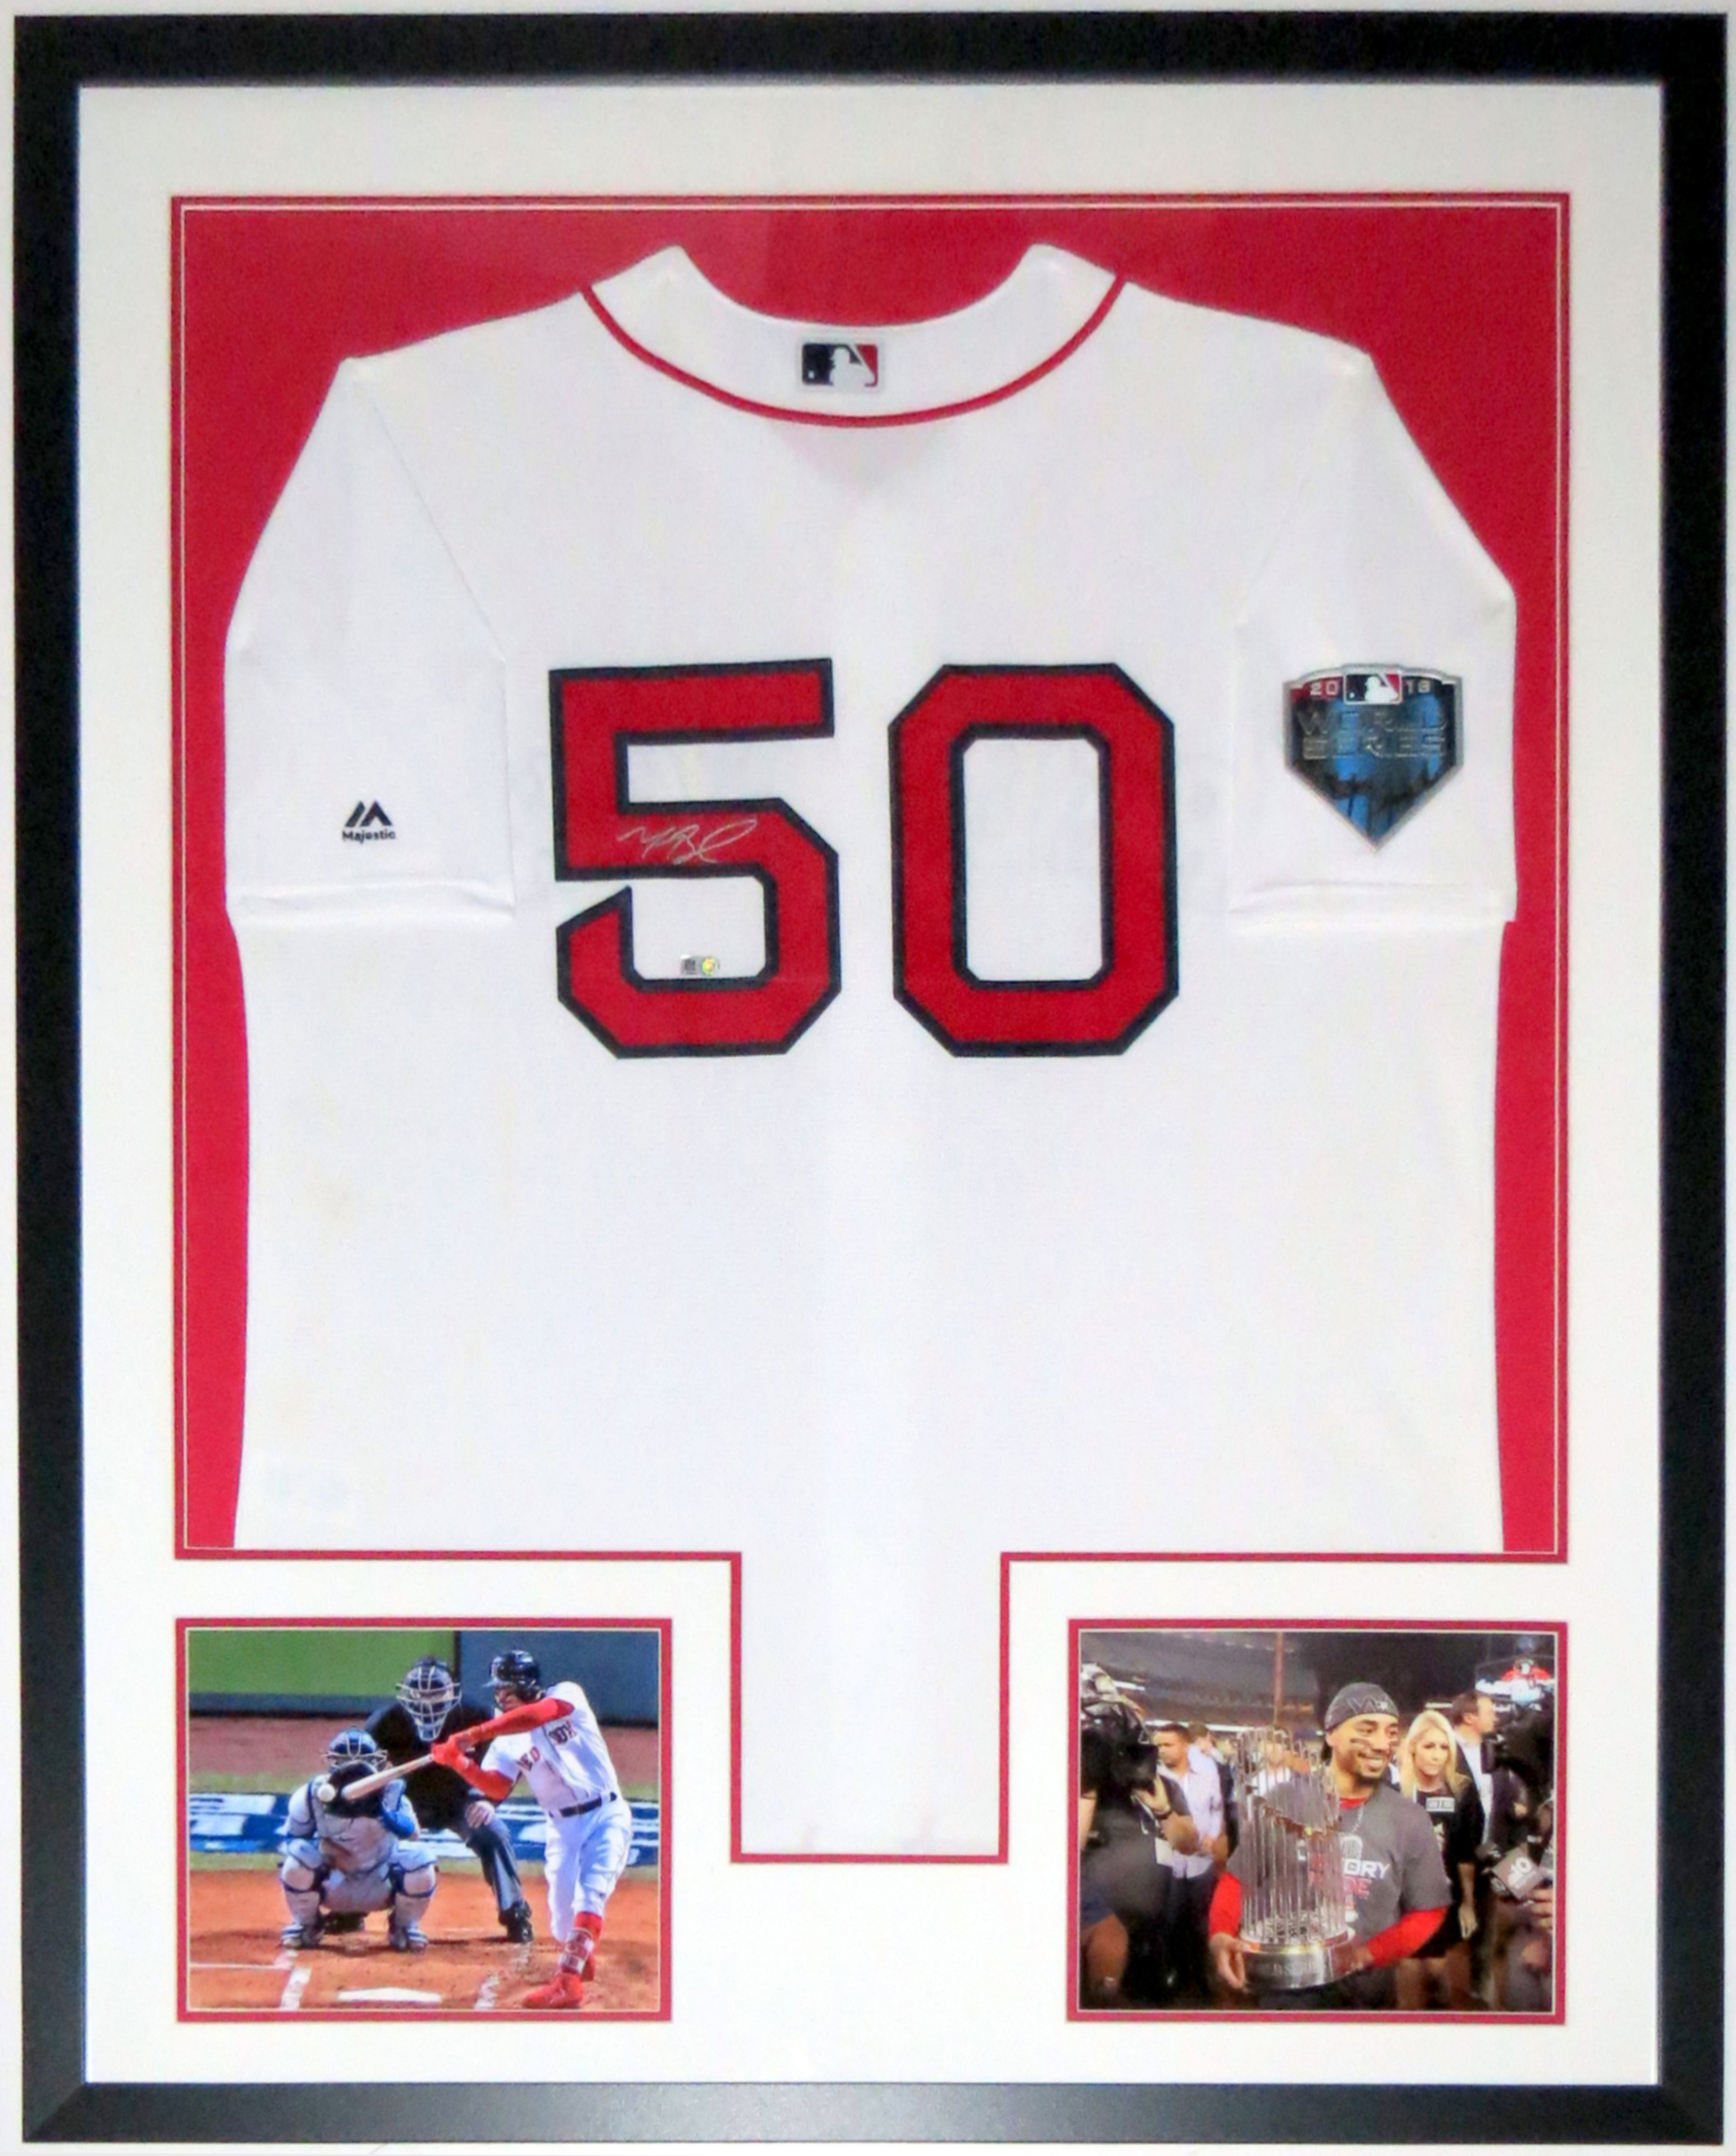 Mookie Betts Signed Boston Red Sox 2018 World Series Jersey - MLB COA Authenticated - Professionally Framed & 2 8x10 Photo